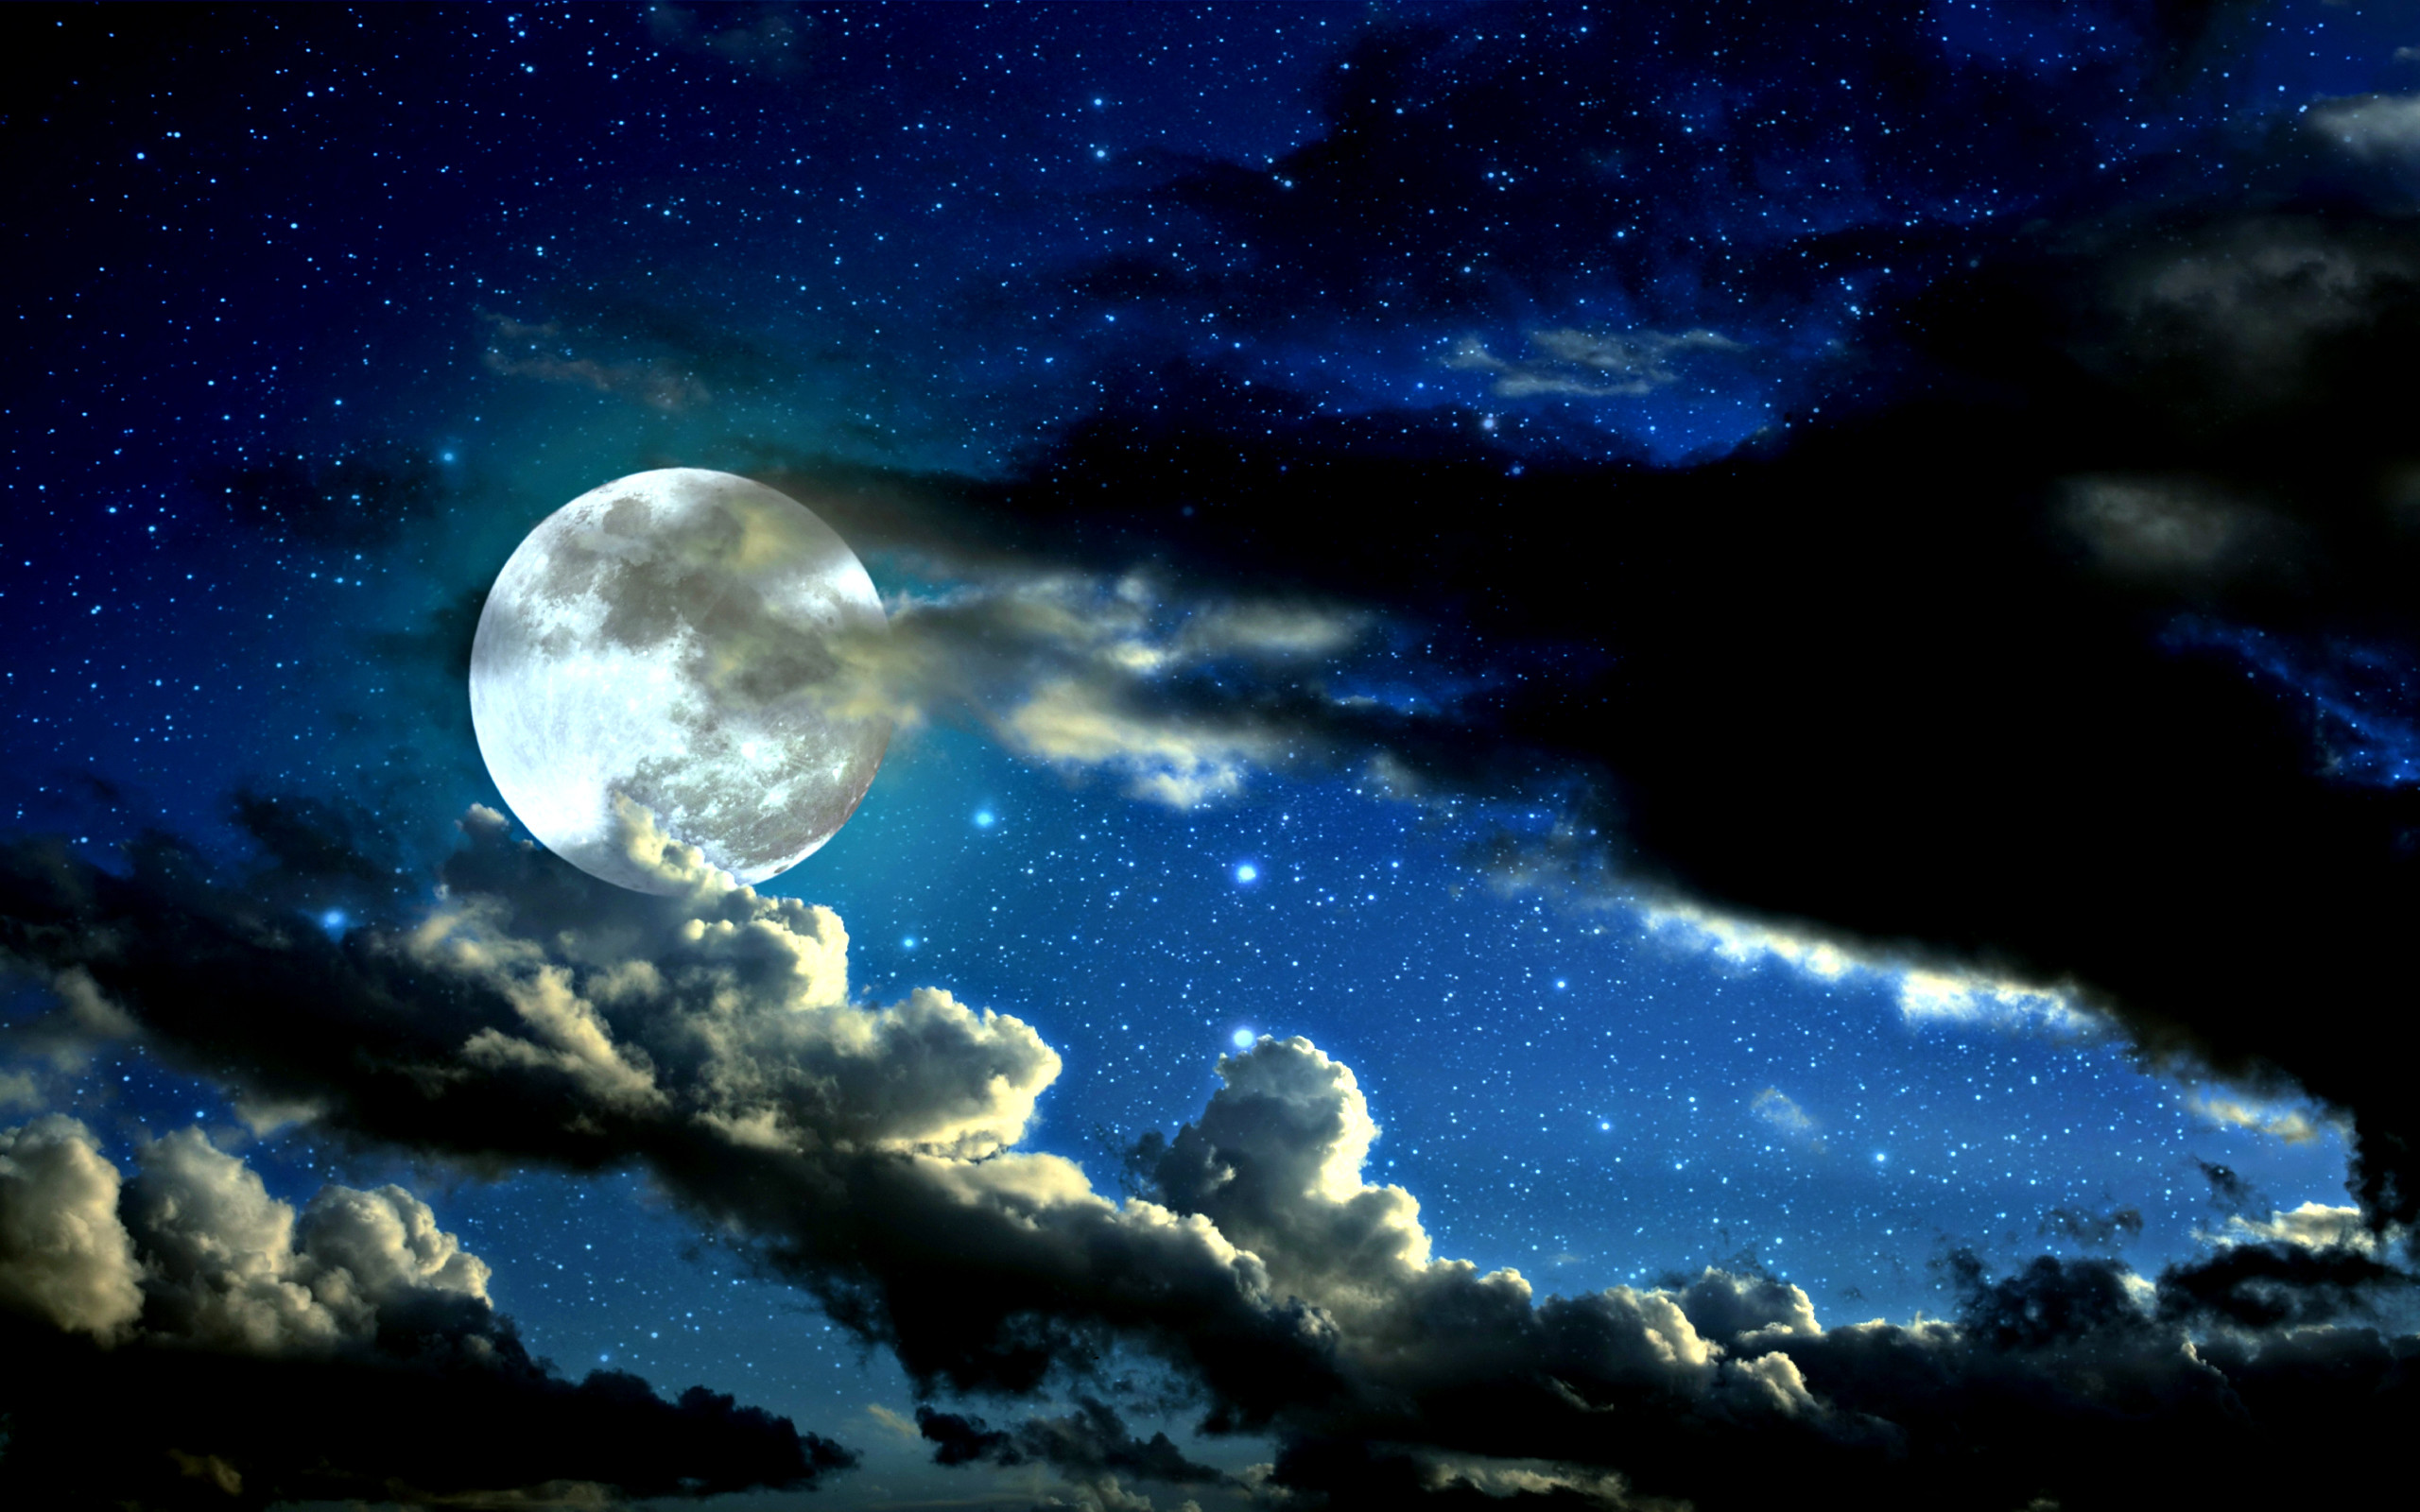 Moon Cool Backgrounds Image Wallpapers HD Wallpapers Moon Cool 2560x1600